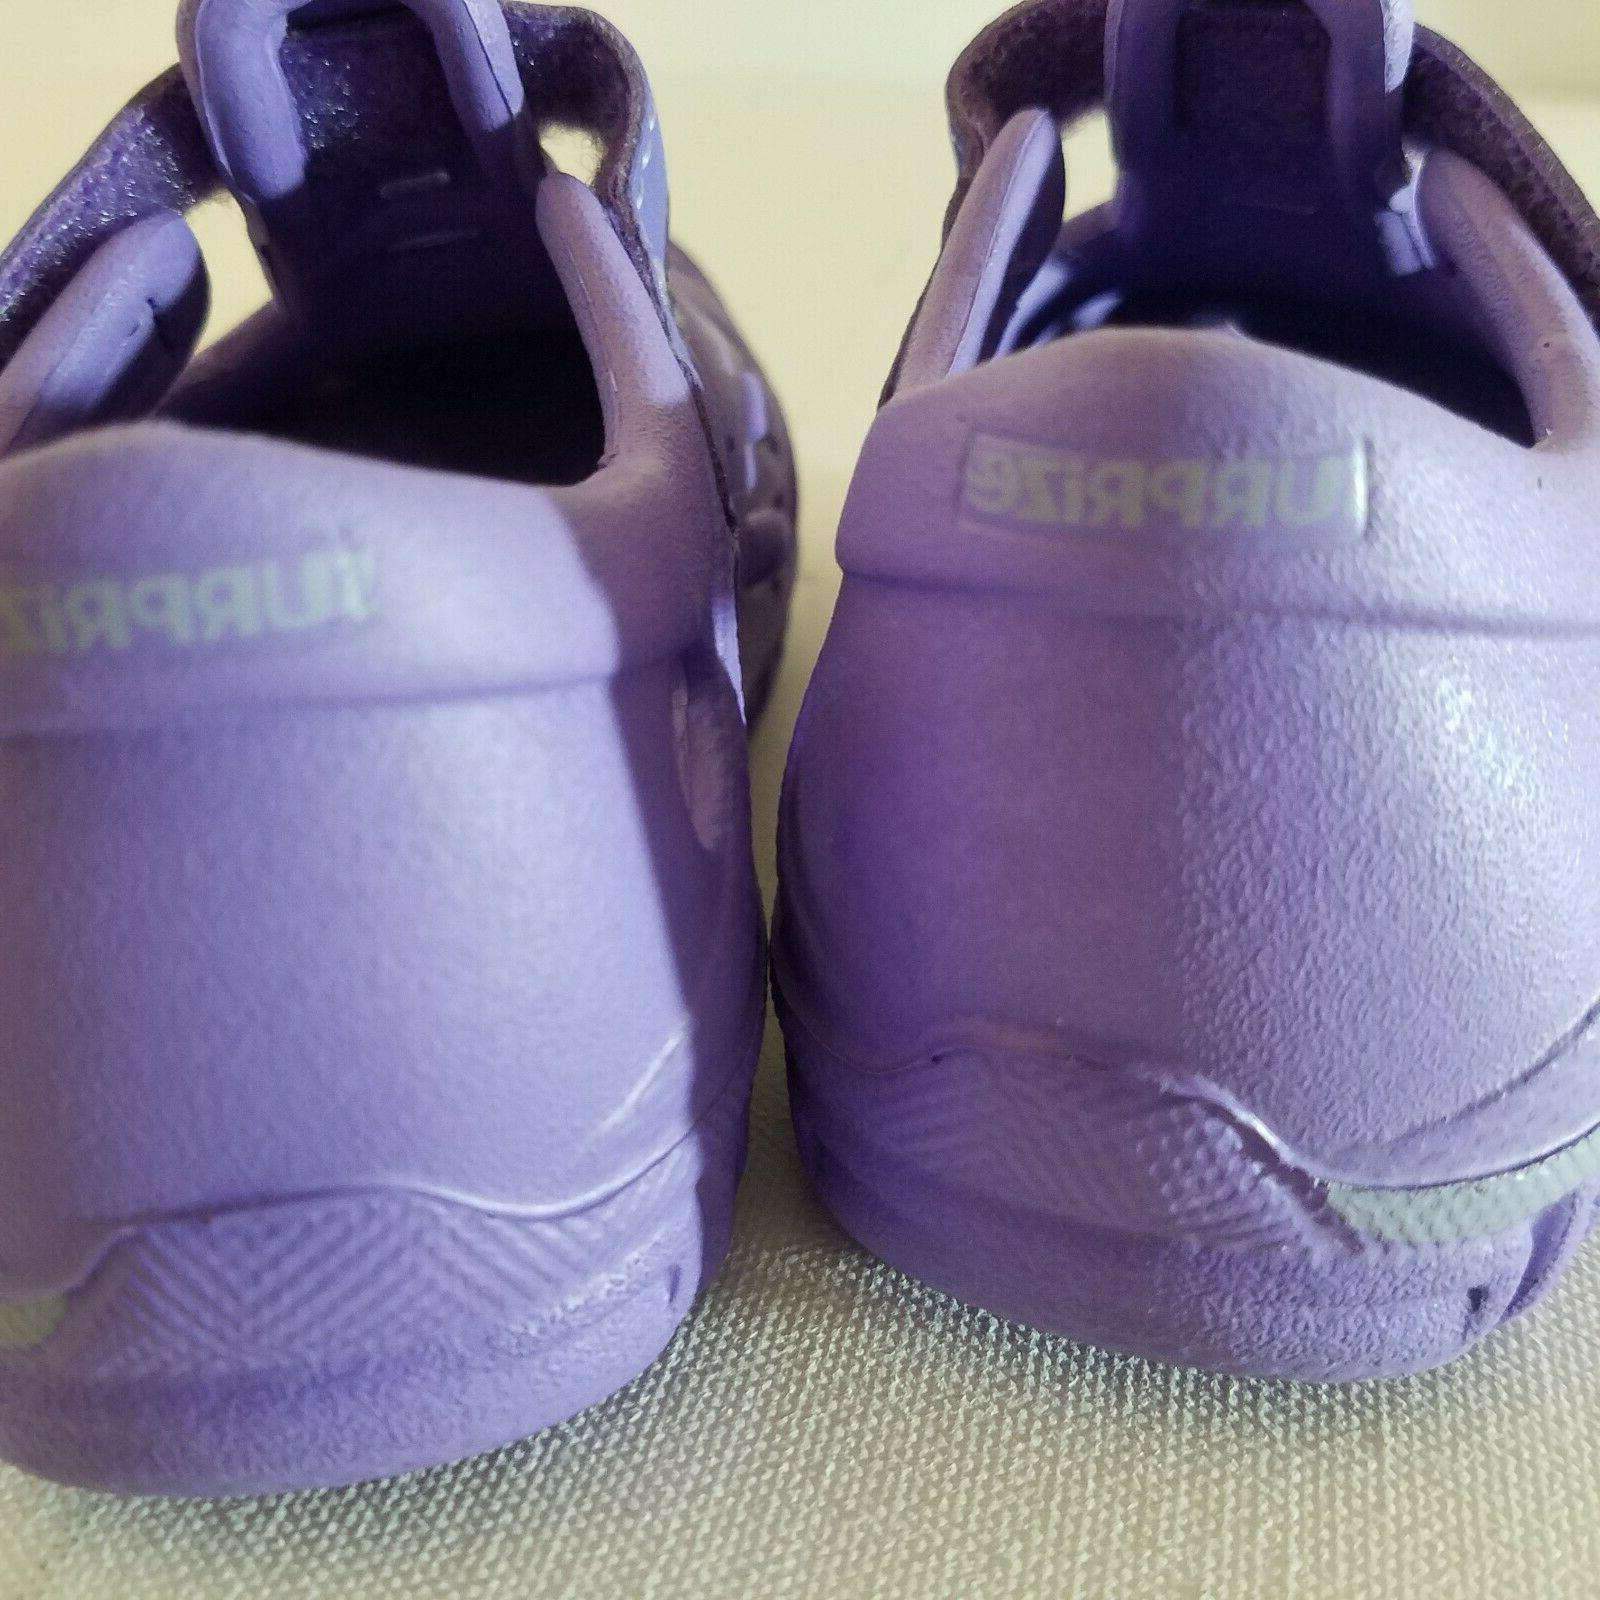 Girls & Land Shoes 3, 5 Purple and Loop